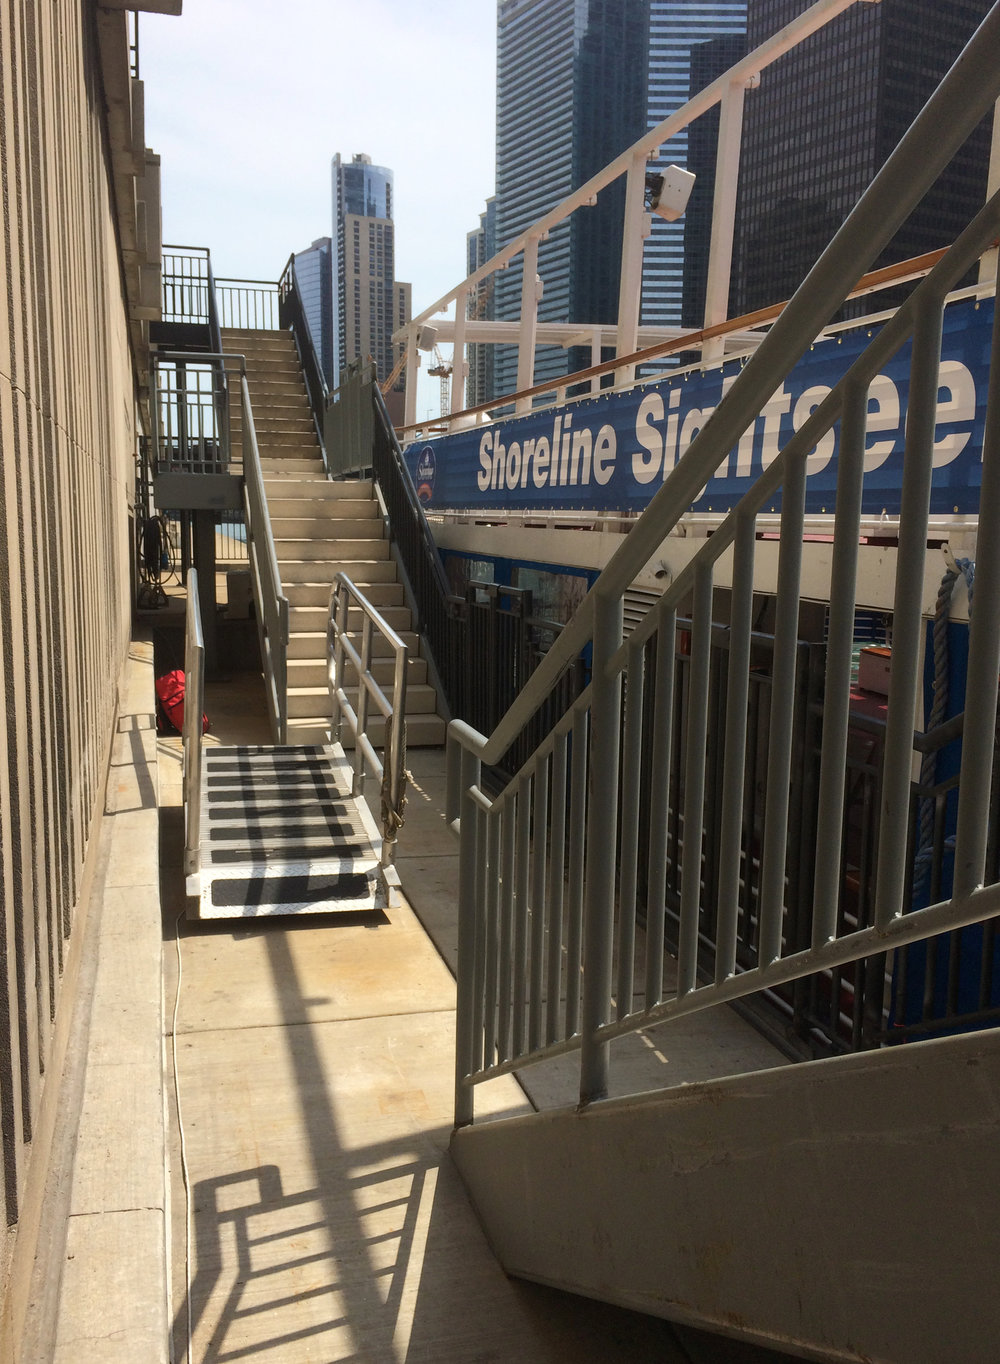 custom new construction, commercial design, staircase, stairway, new stairs, Chicago Riverwalk River, boat dock, improve access, waterfront, riverfront, waterways